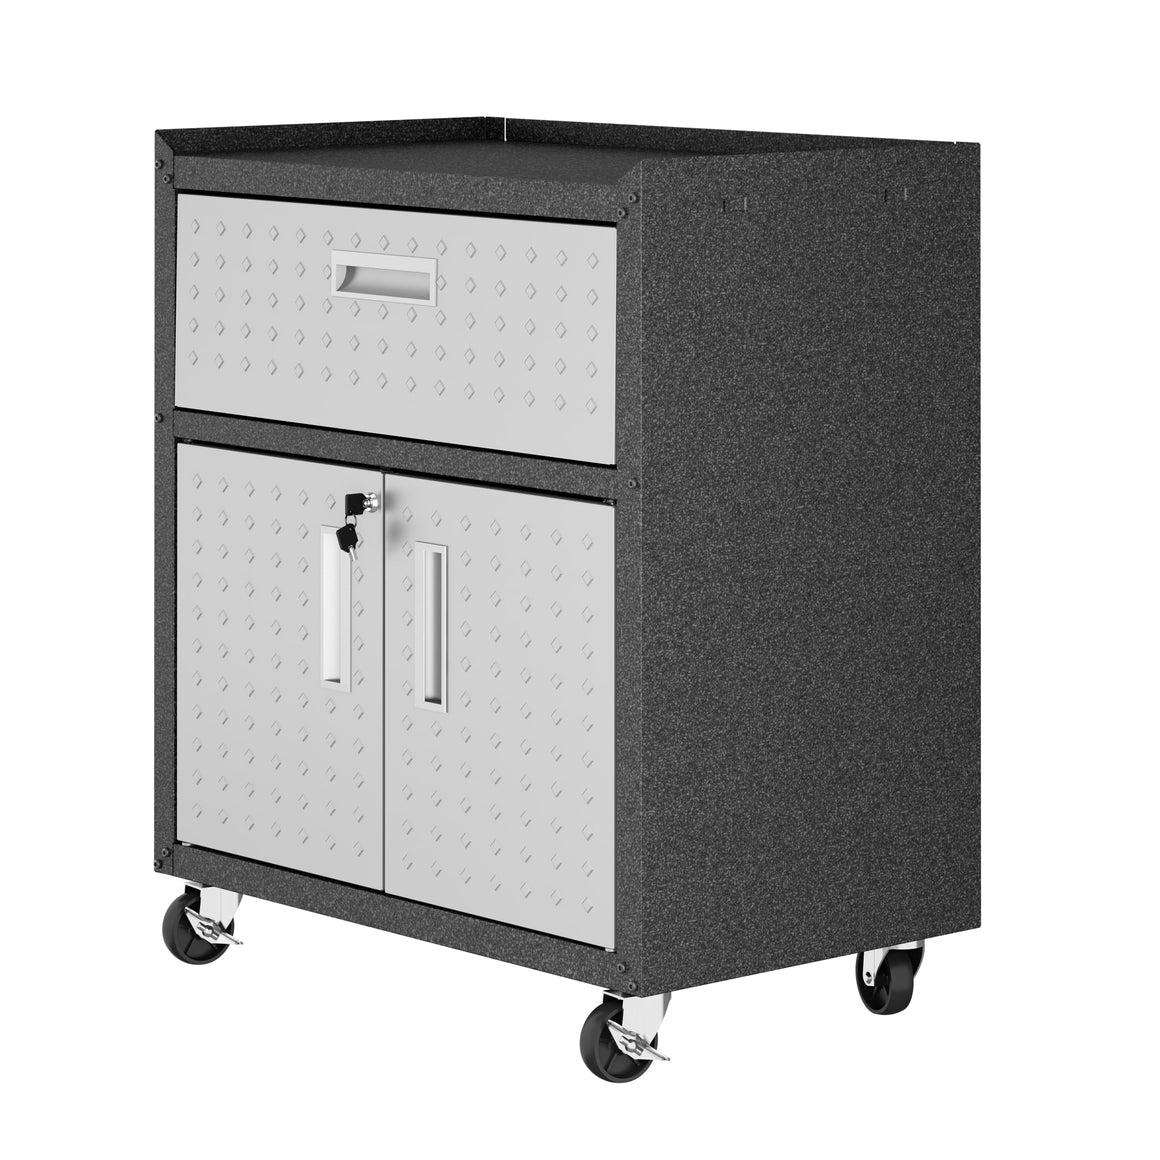 "Fortress 31.5"" Mobile Garage Cabinet with Drawer and Shelves"